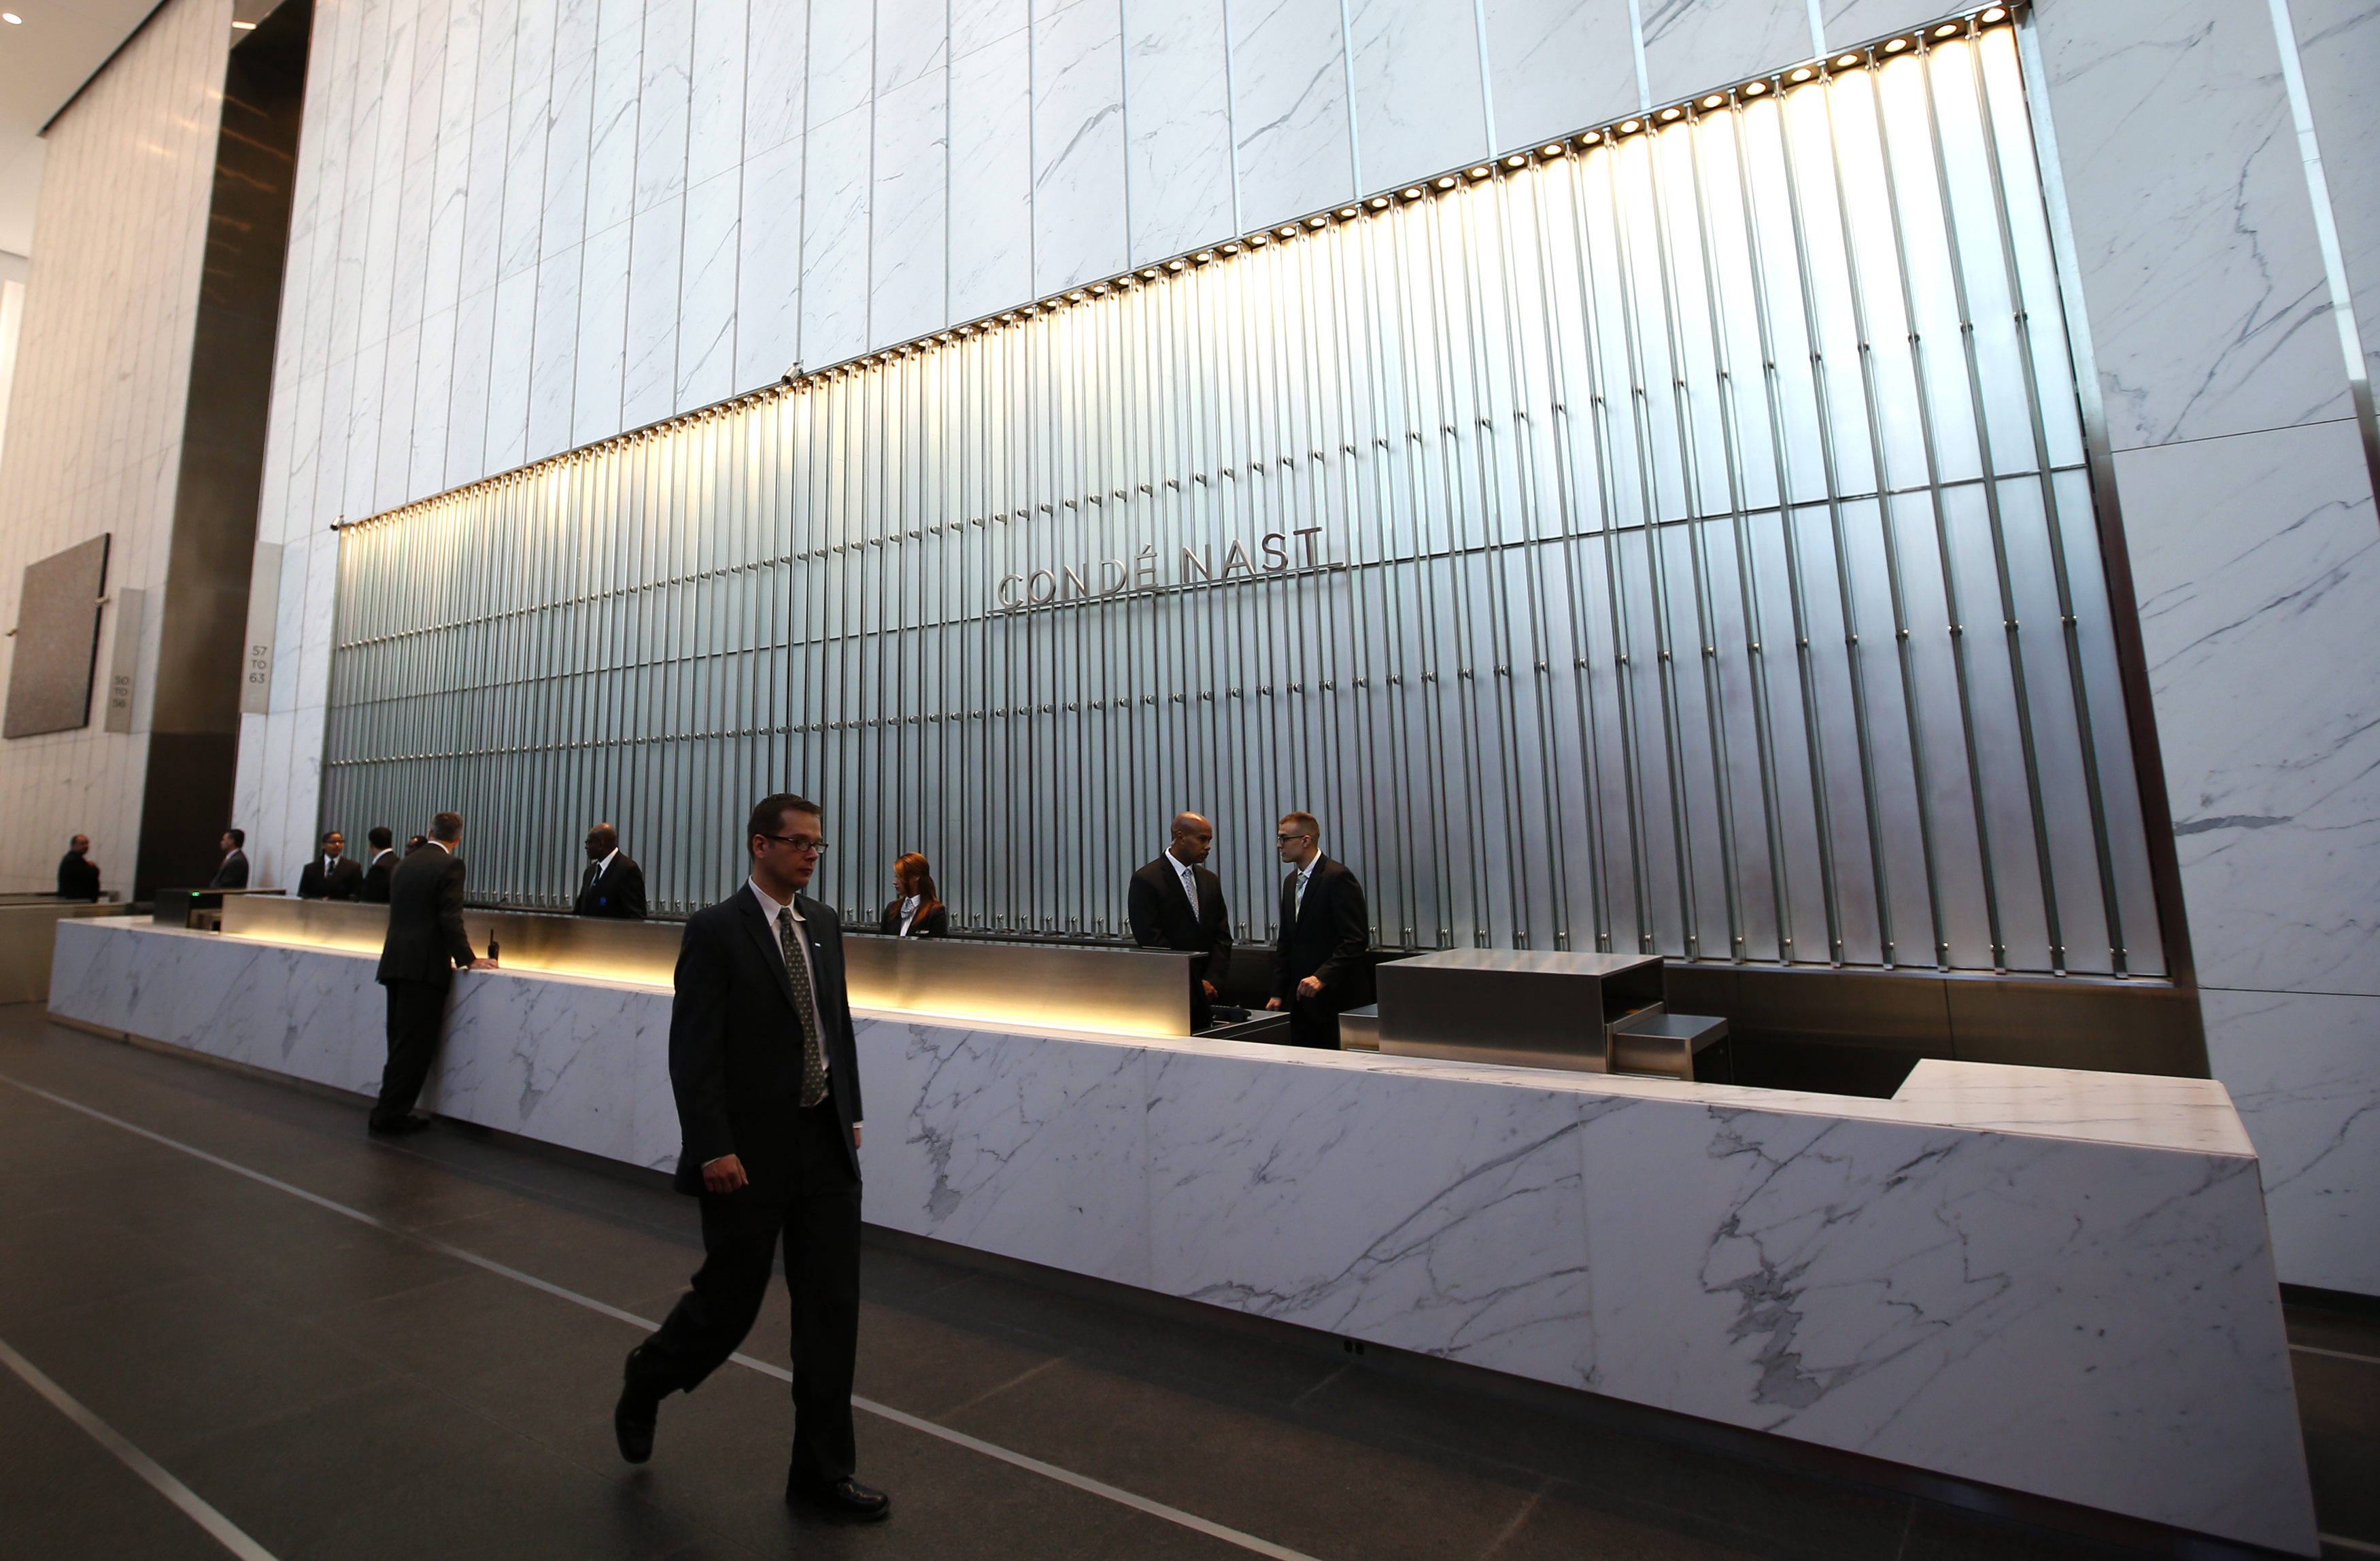 Condé  Nast employees work in the lobby of the One World Trade Center tower in New York City on Nov. 3, 2014